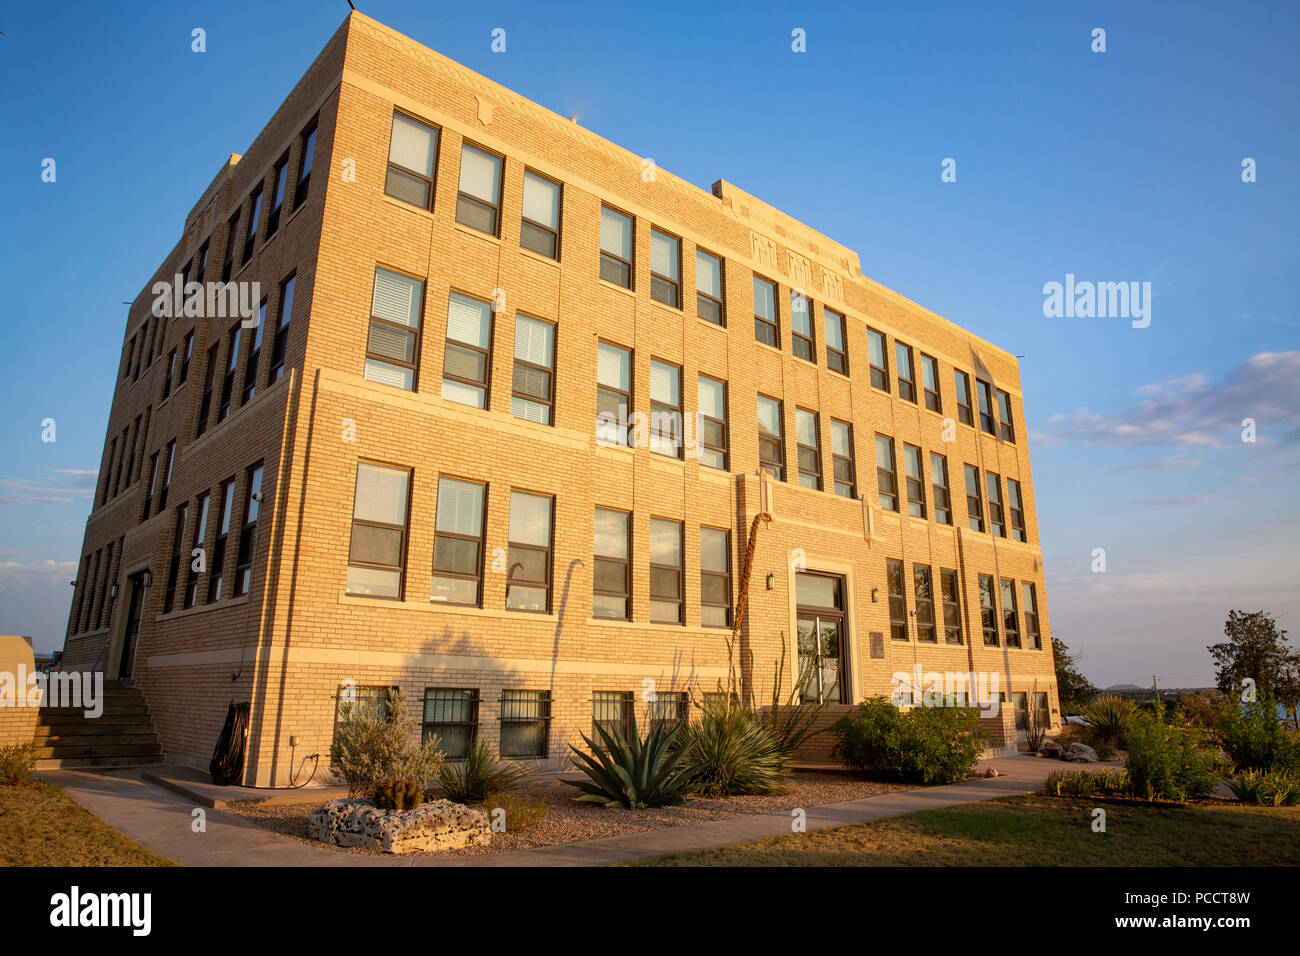 The historic 1937 Irion County courthouse in Merzon Texas in Art-Modern style. Stock Photo